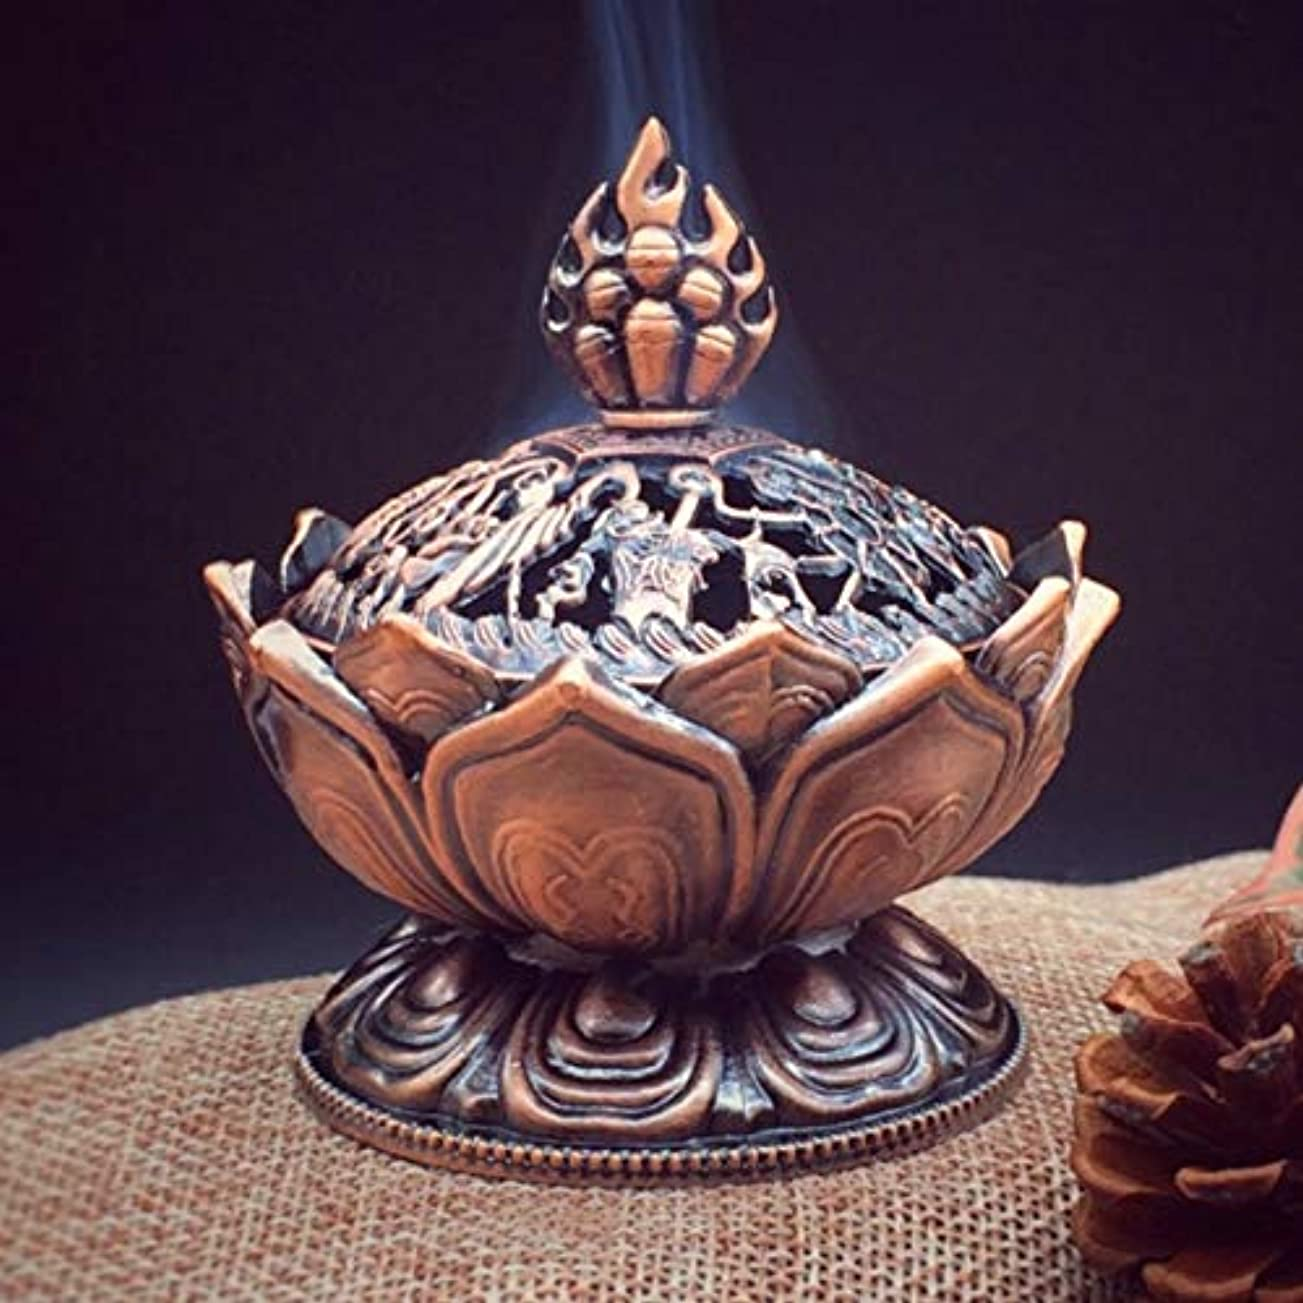 シャンパン価値紳士気取りの、きざなHoly Tibetan Lotus Designed Incense Burner Zinc Alloy Bronze Mini Incense Burner Incensory Metal Craft Home Decor